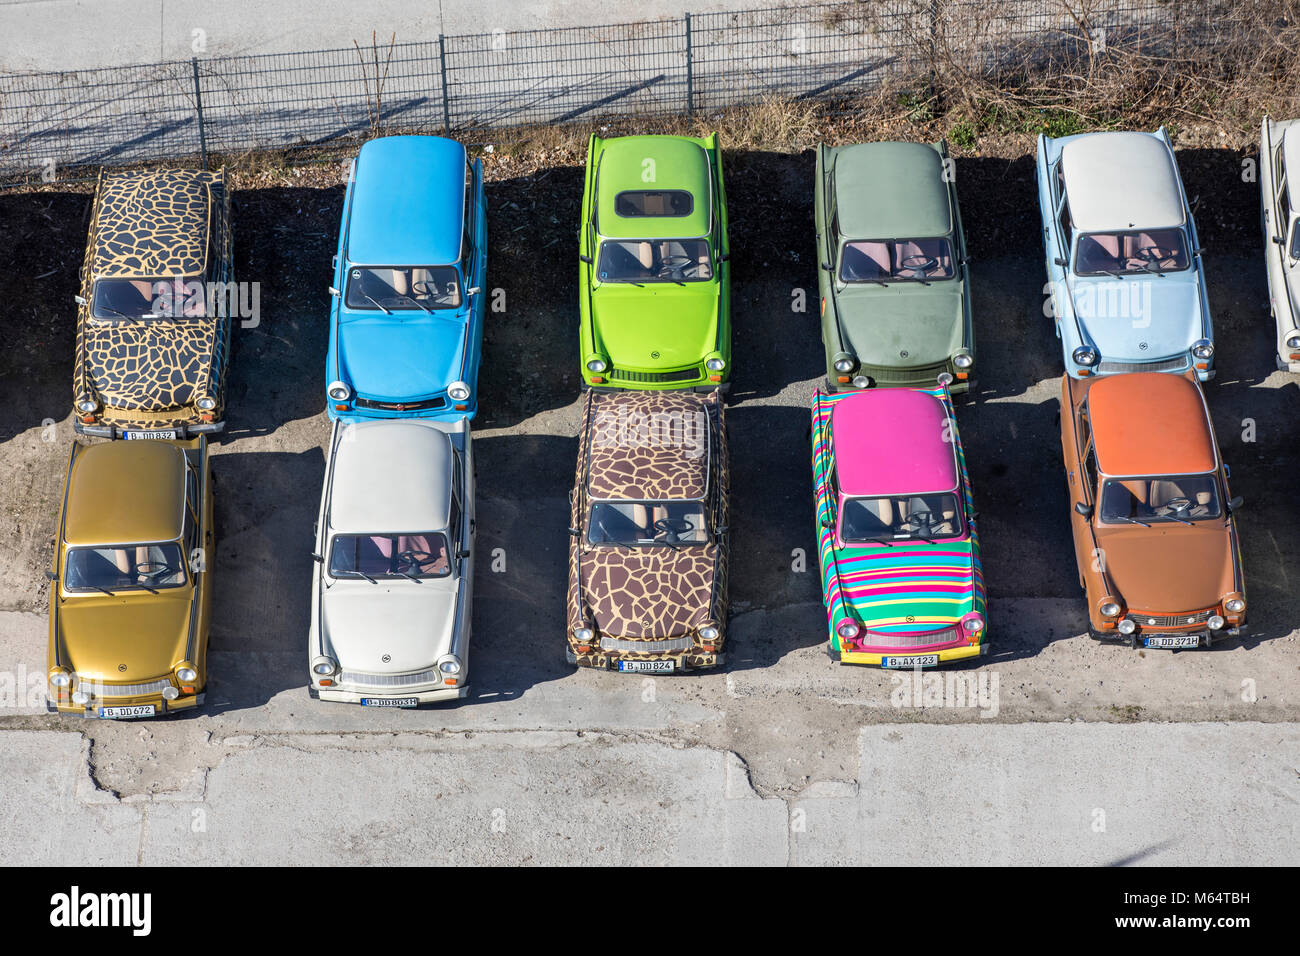 Old DDR Trabant cars, in different designs, Trabbi Point in Berlin, Germany - Stock Image